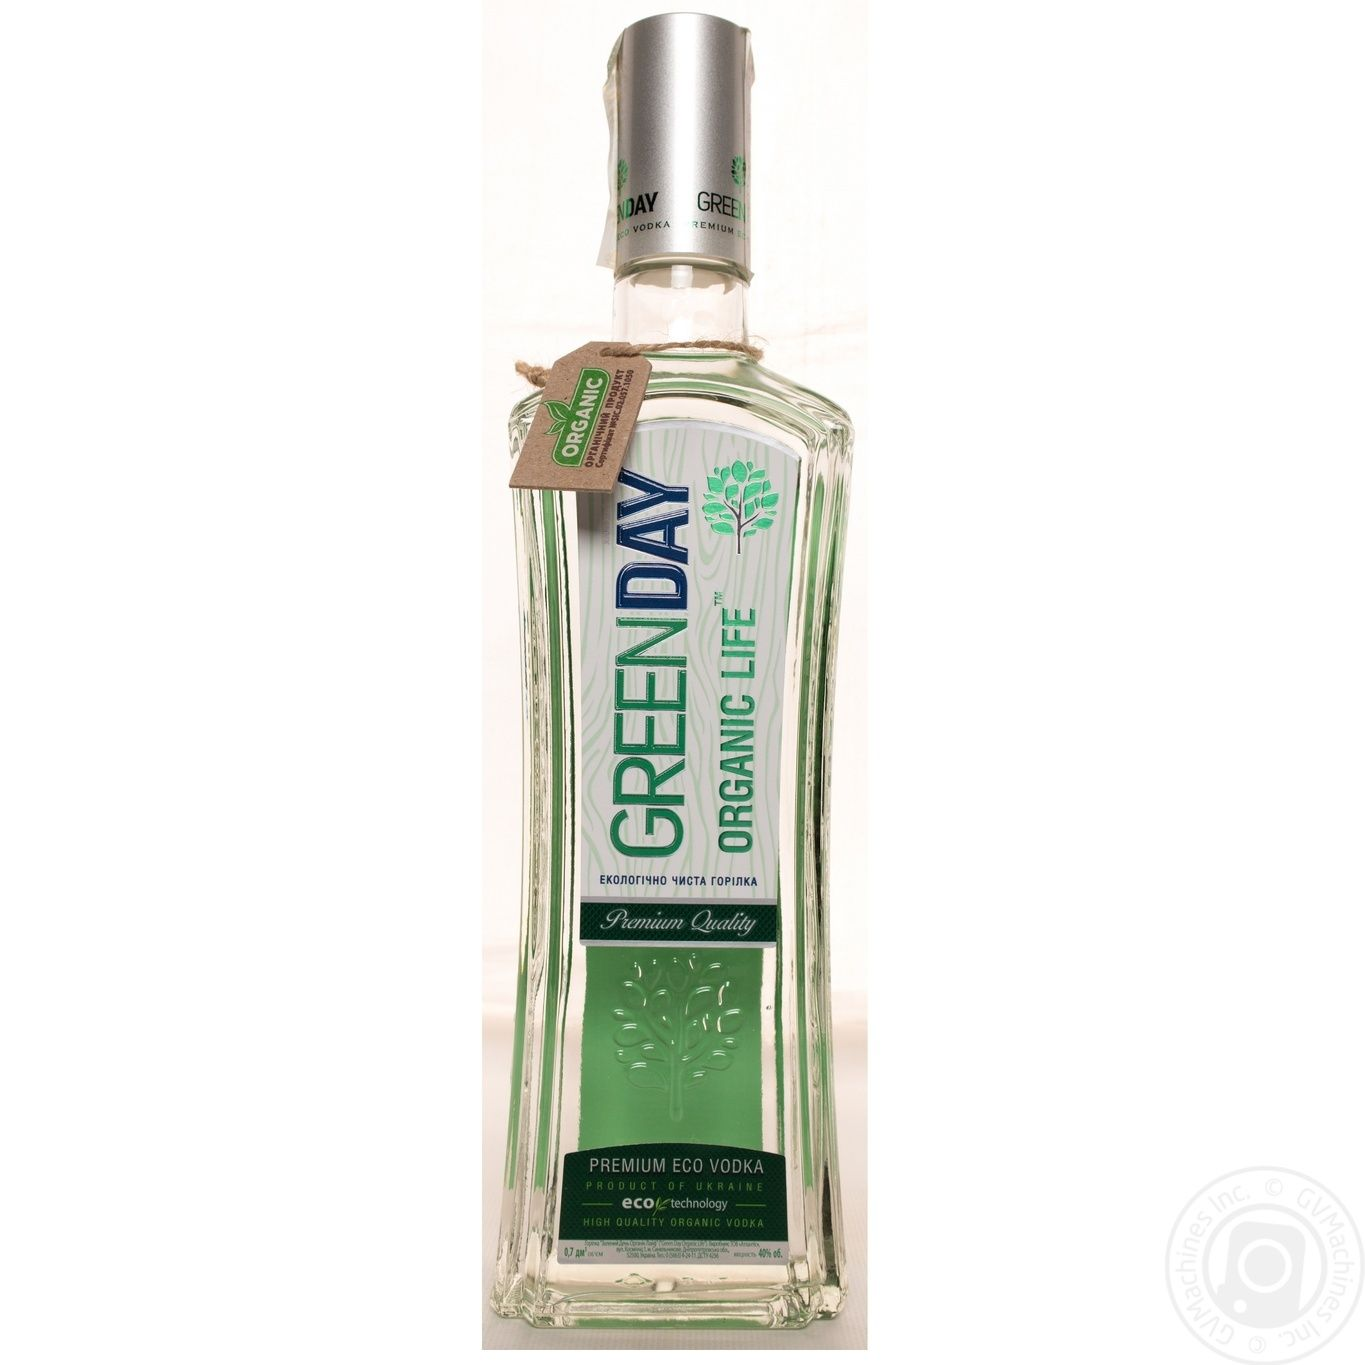 Green Day Organic Life Vodka